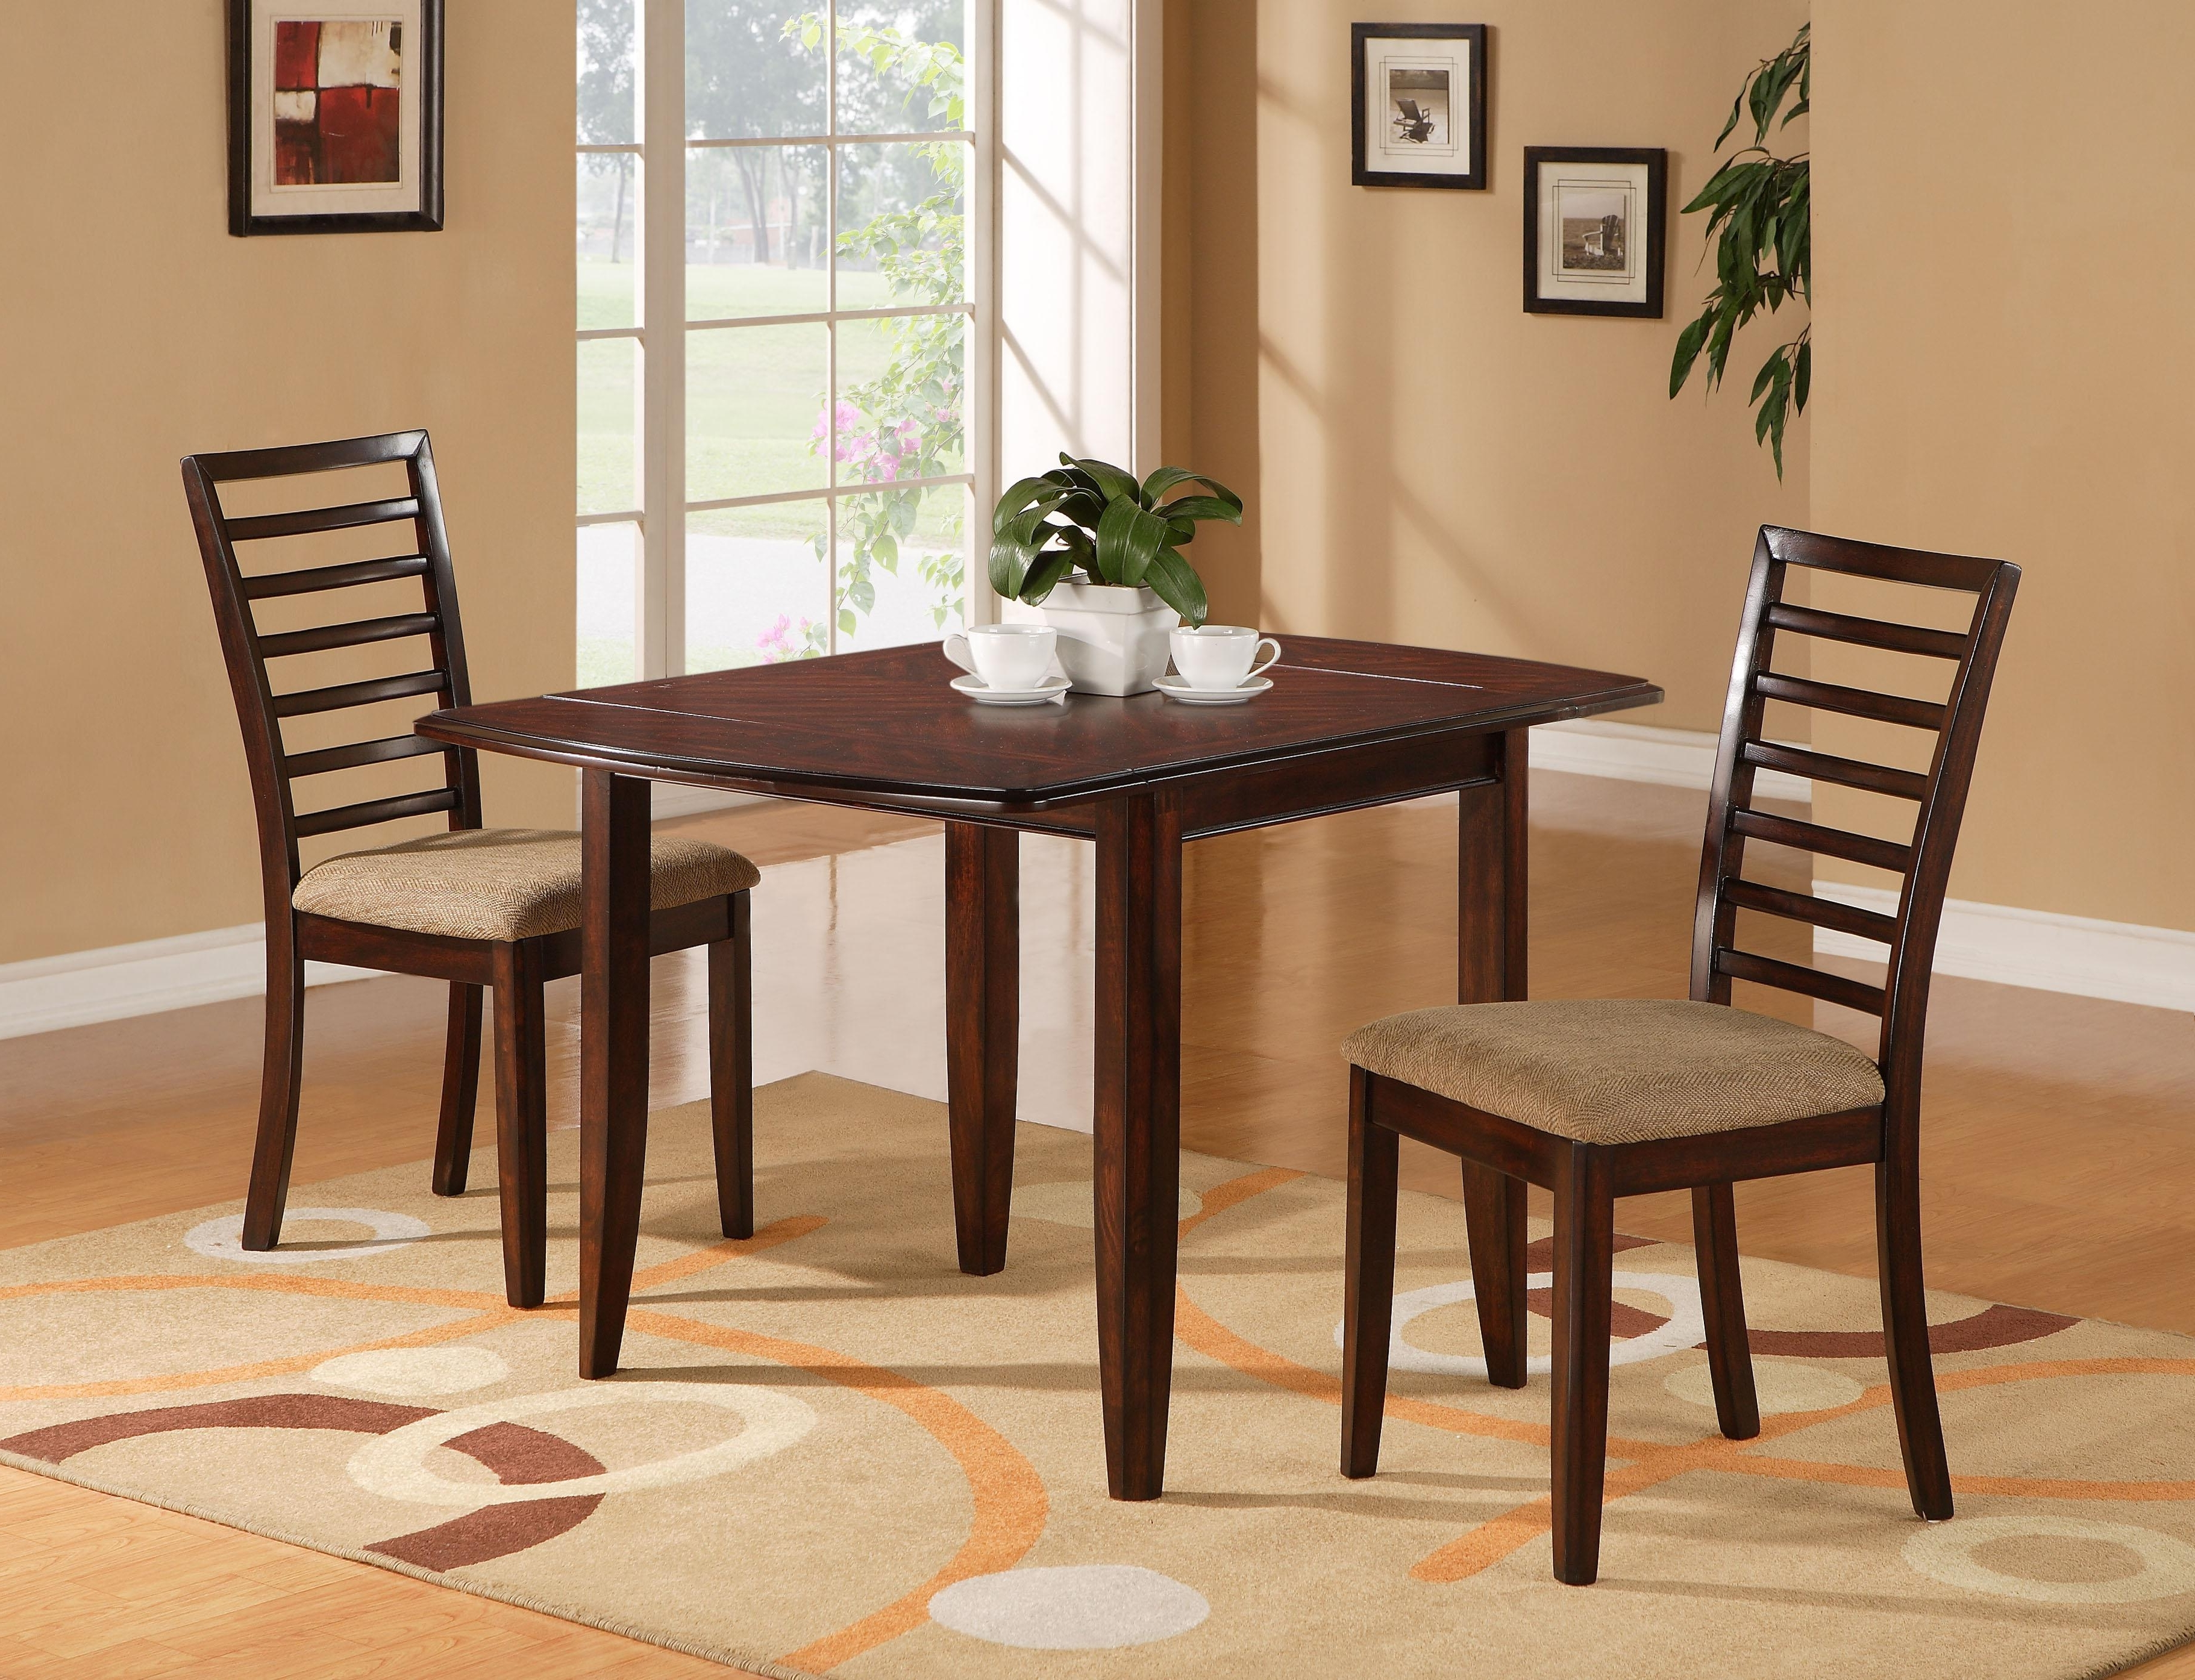 Spokane, Kennewick, Tri Cities, Wenatchee Within Dining Tables And Chairs Sets (View 21 of 25)